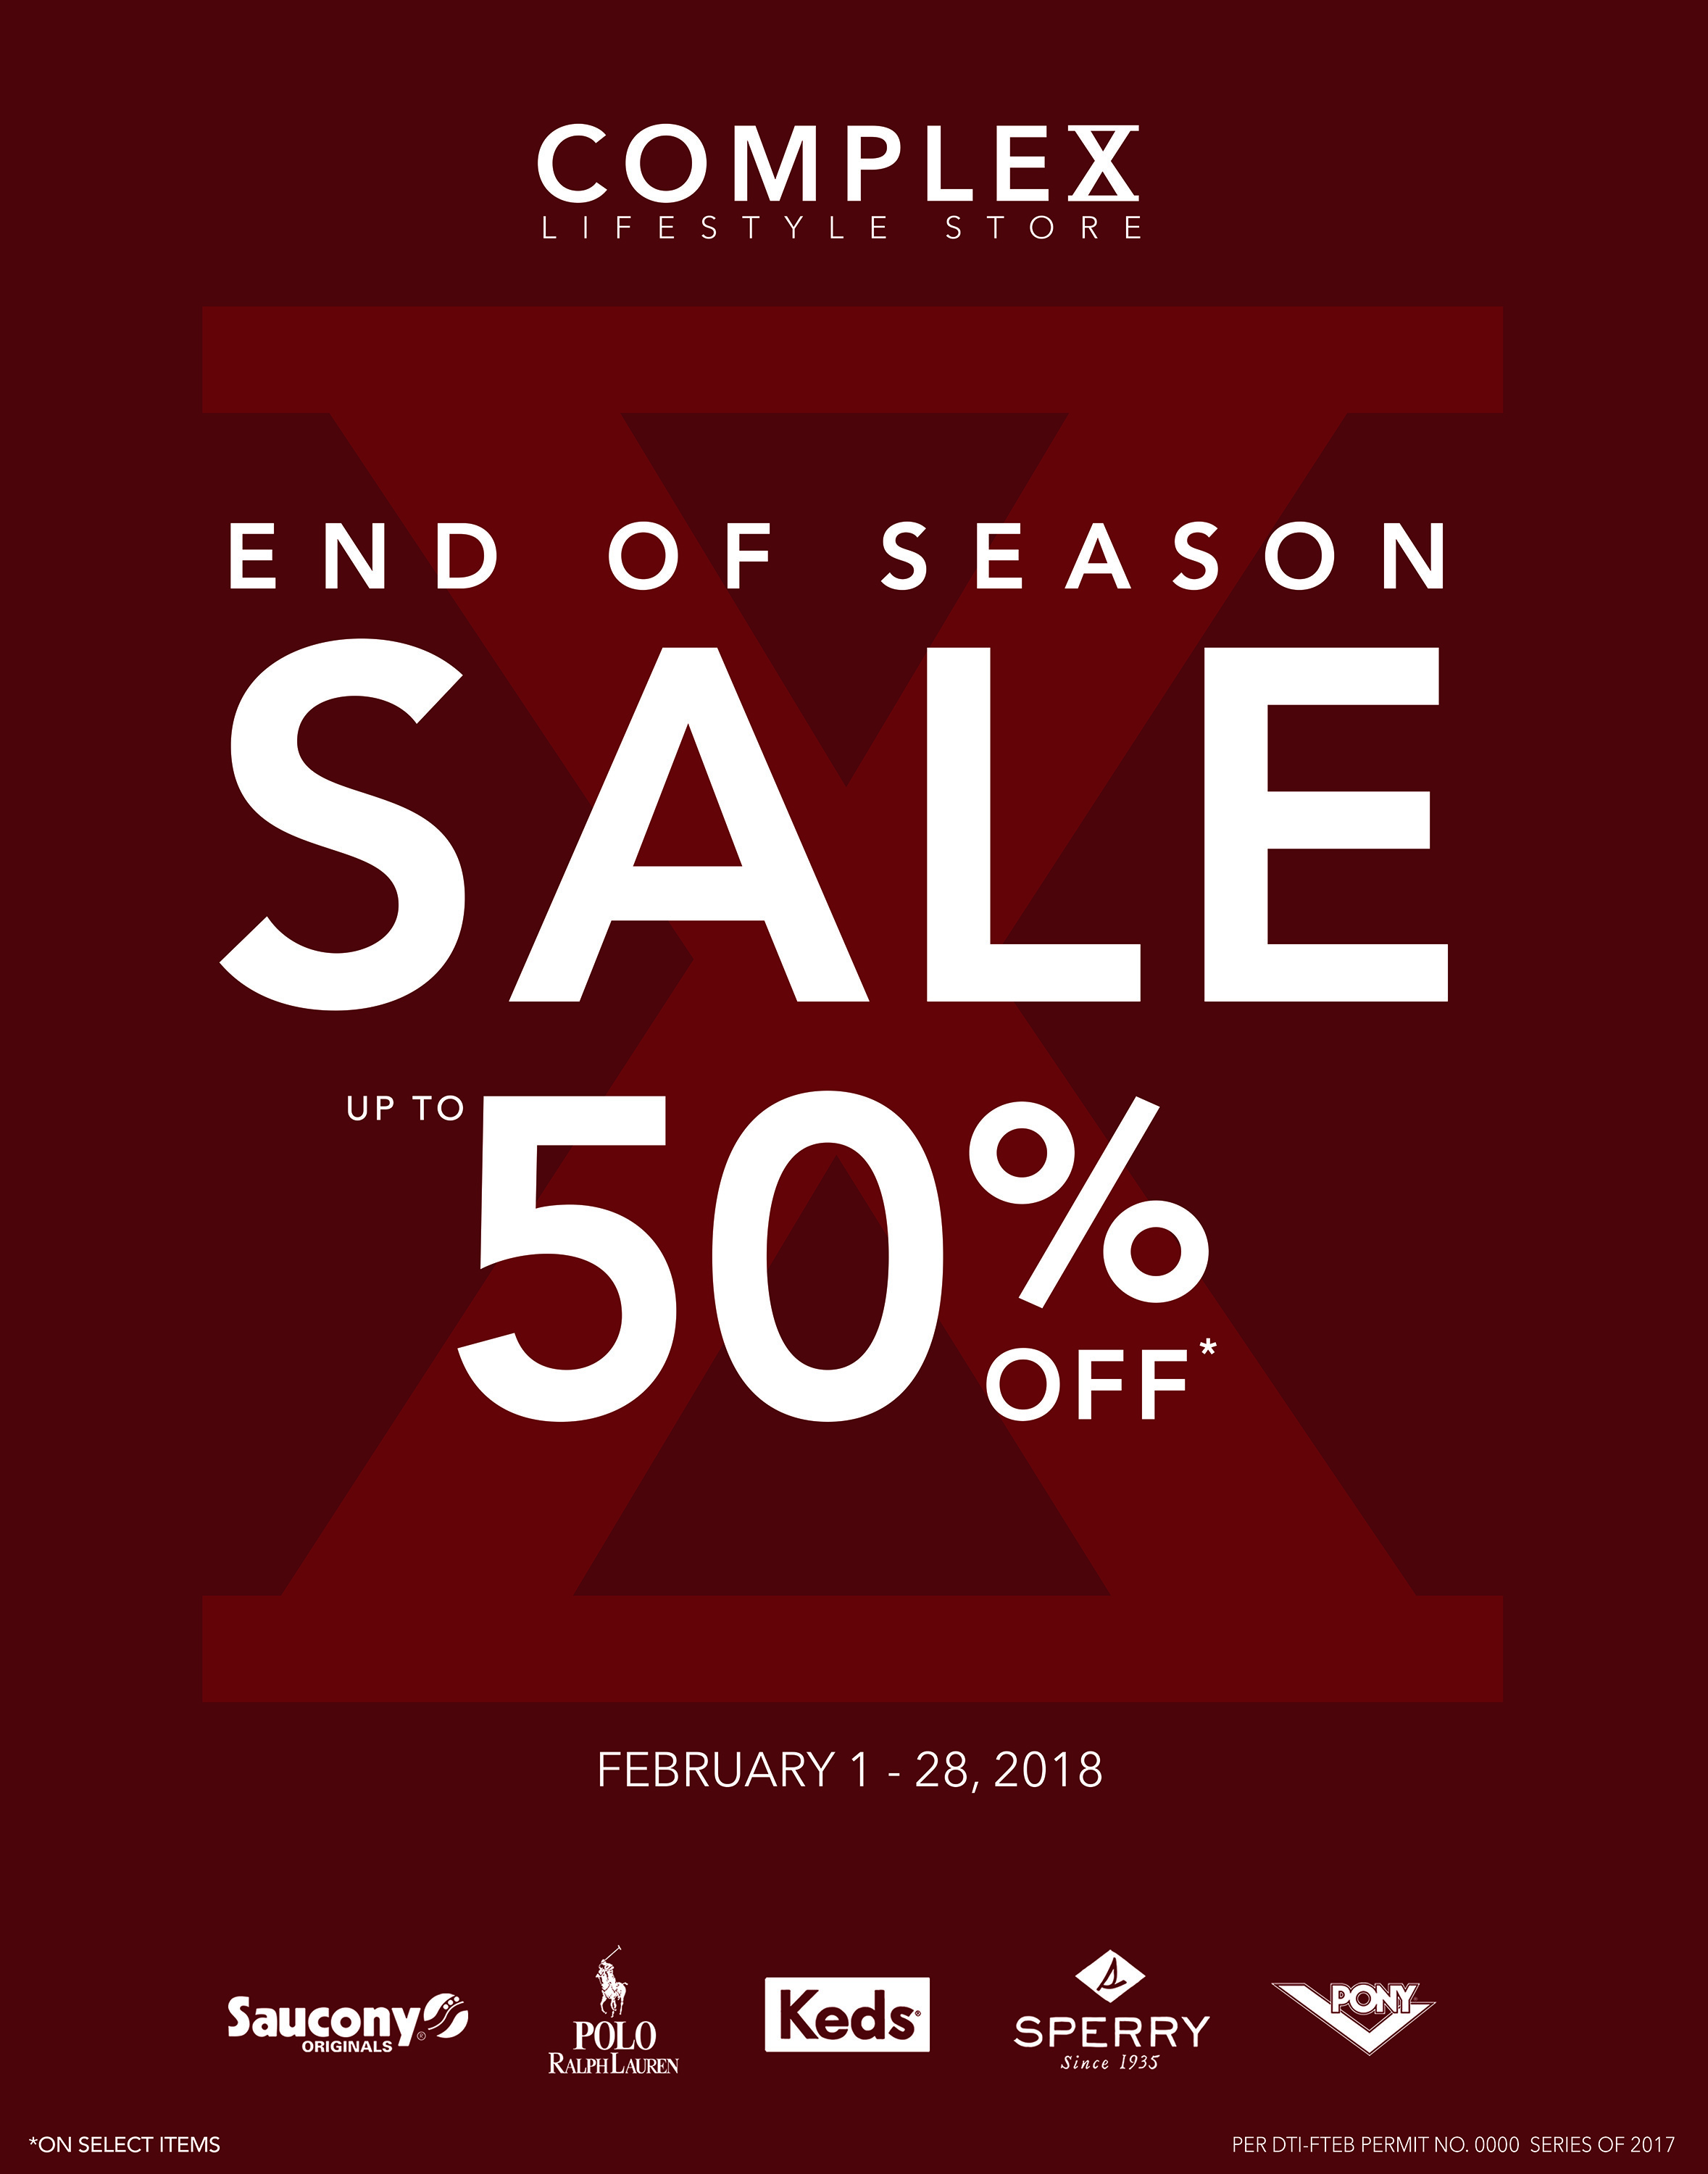 COMPLEX LIFESTYLE STORE END OF SEASON SALE!